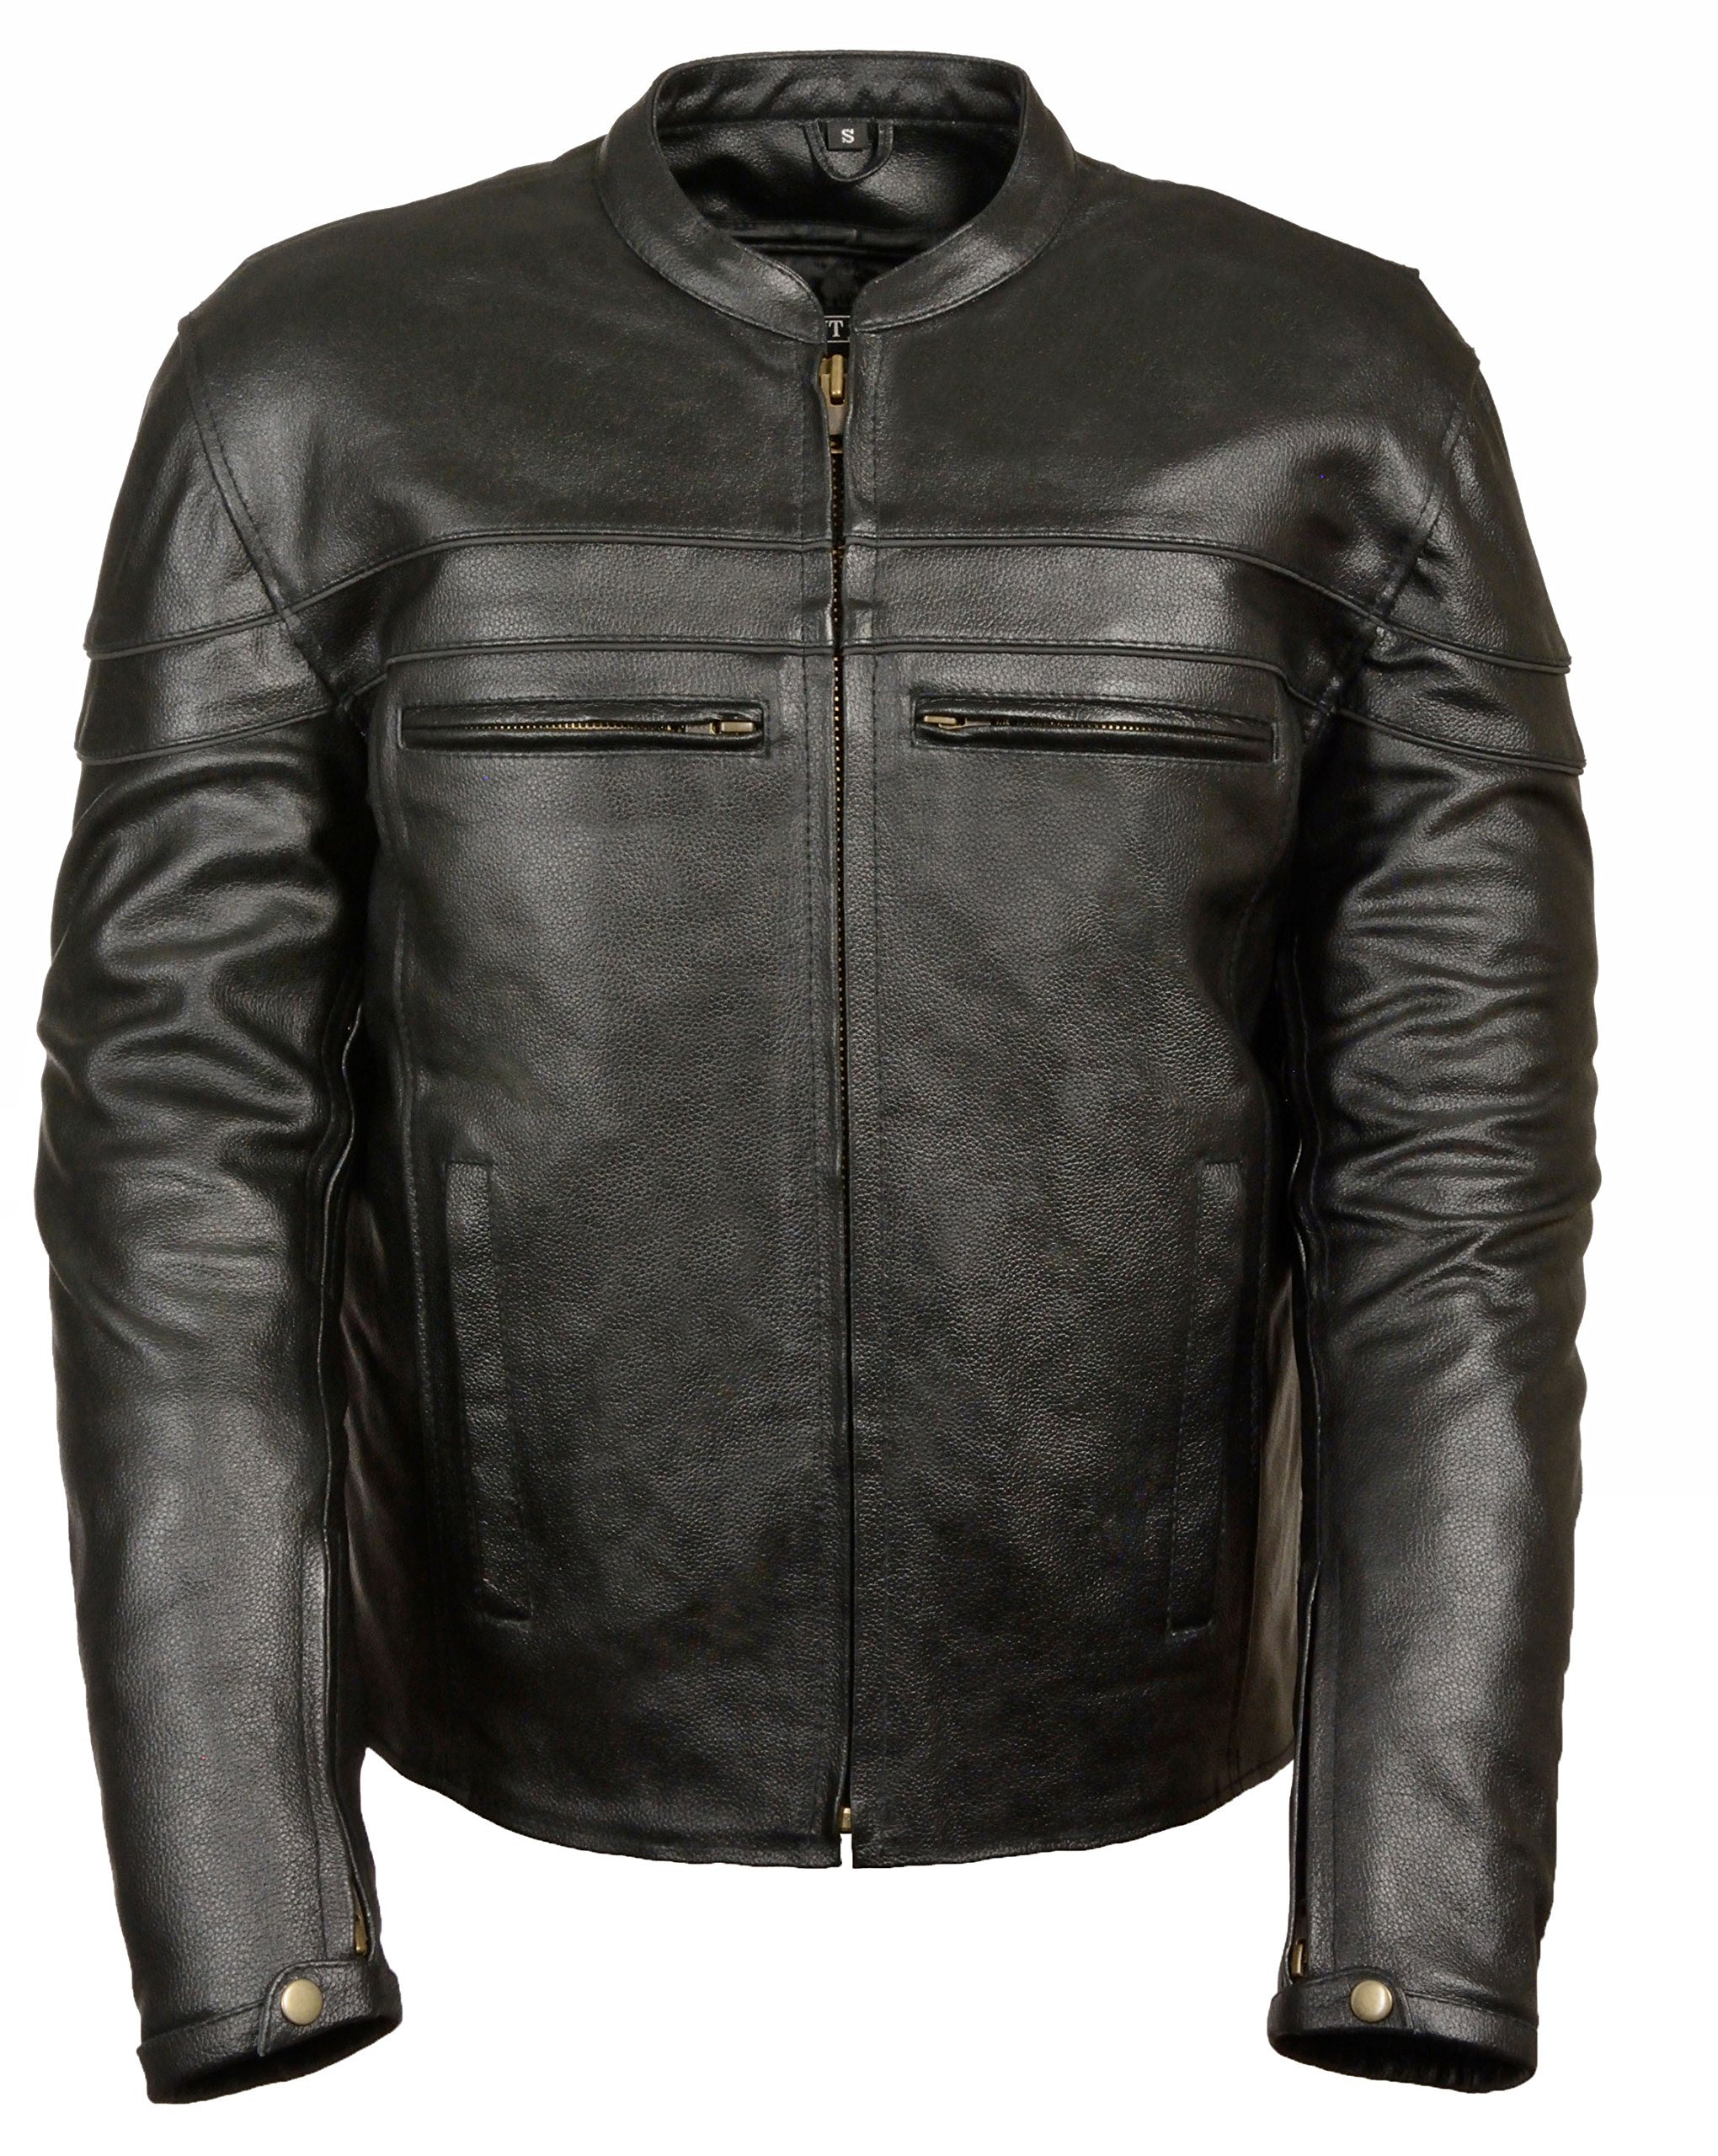 Mens Leather Sporty Scooter Crossover Jacket, Black Size S